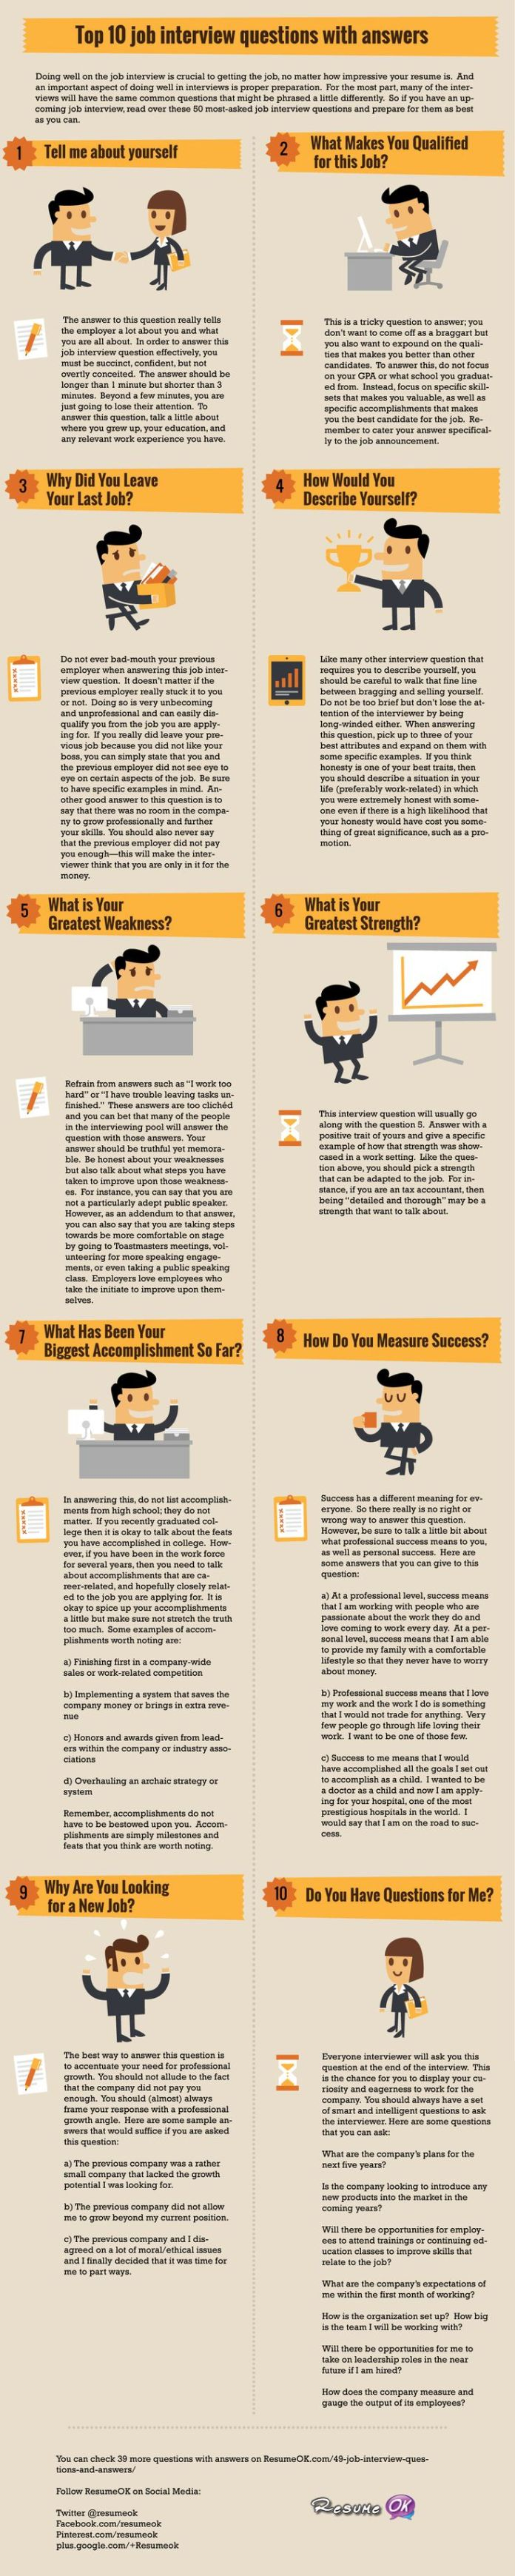 career infographic   50 job interview questions and